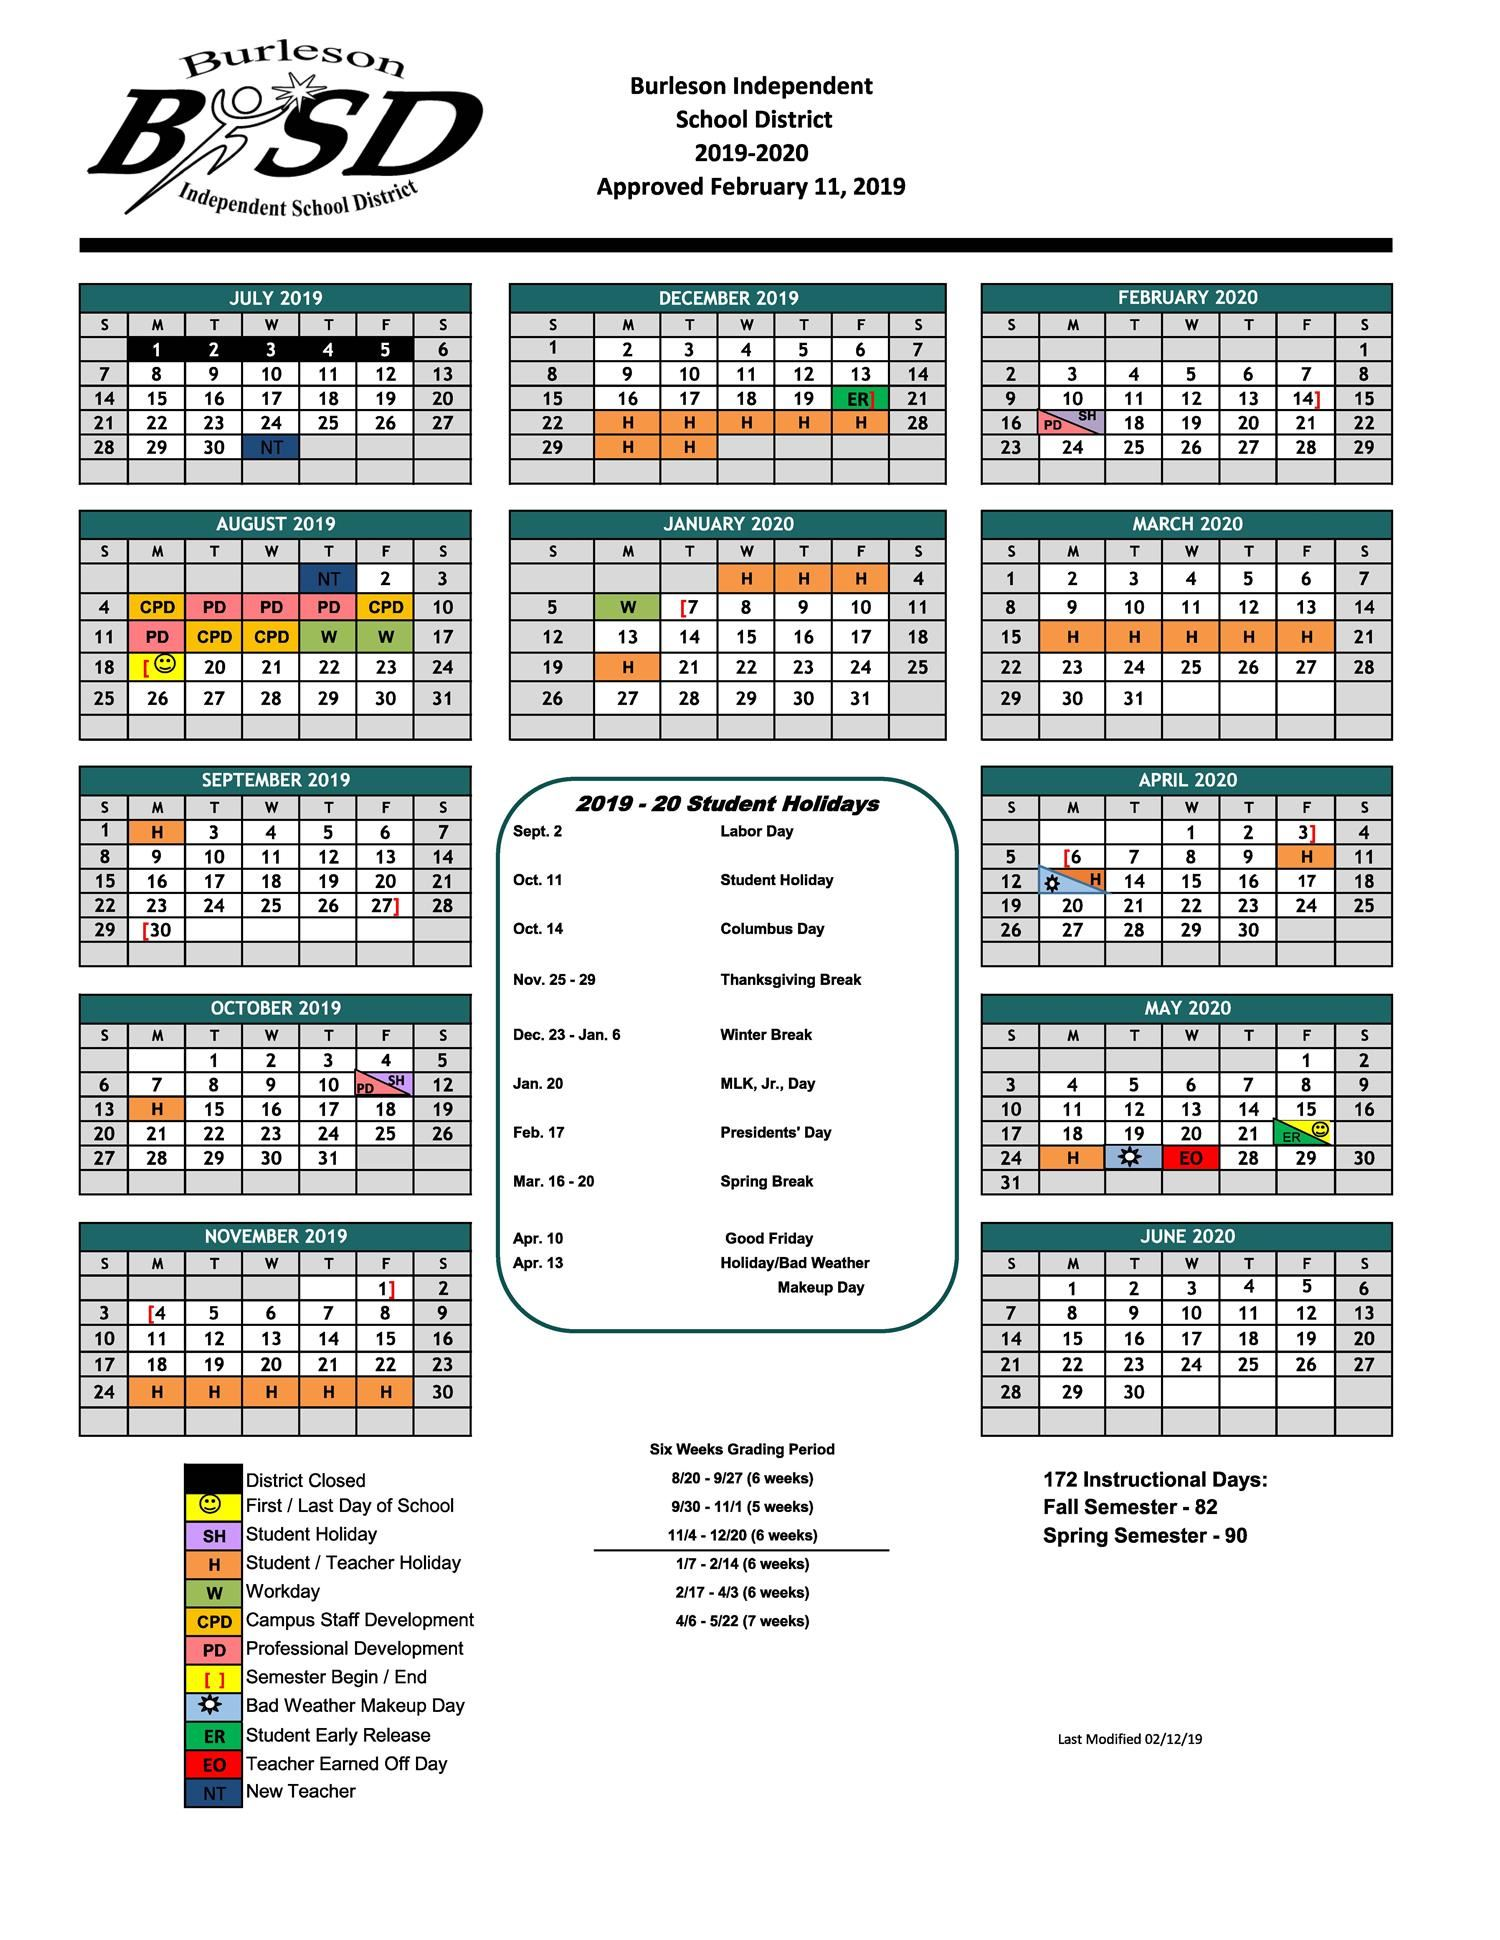 ?Burleson ISD Student Calendar for 2019-20 School Year Approved?